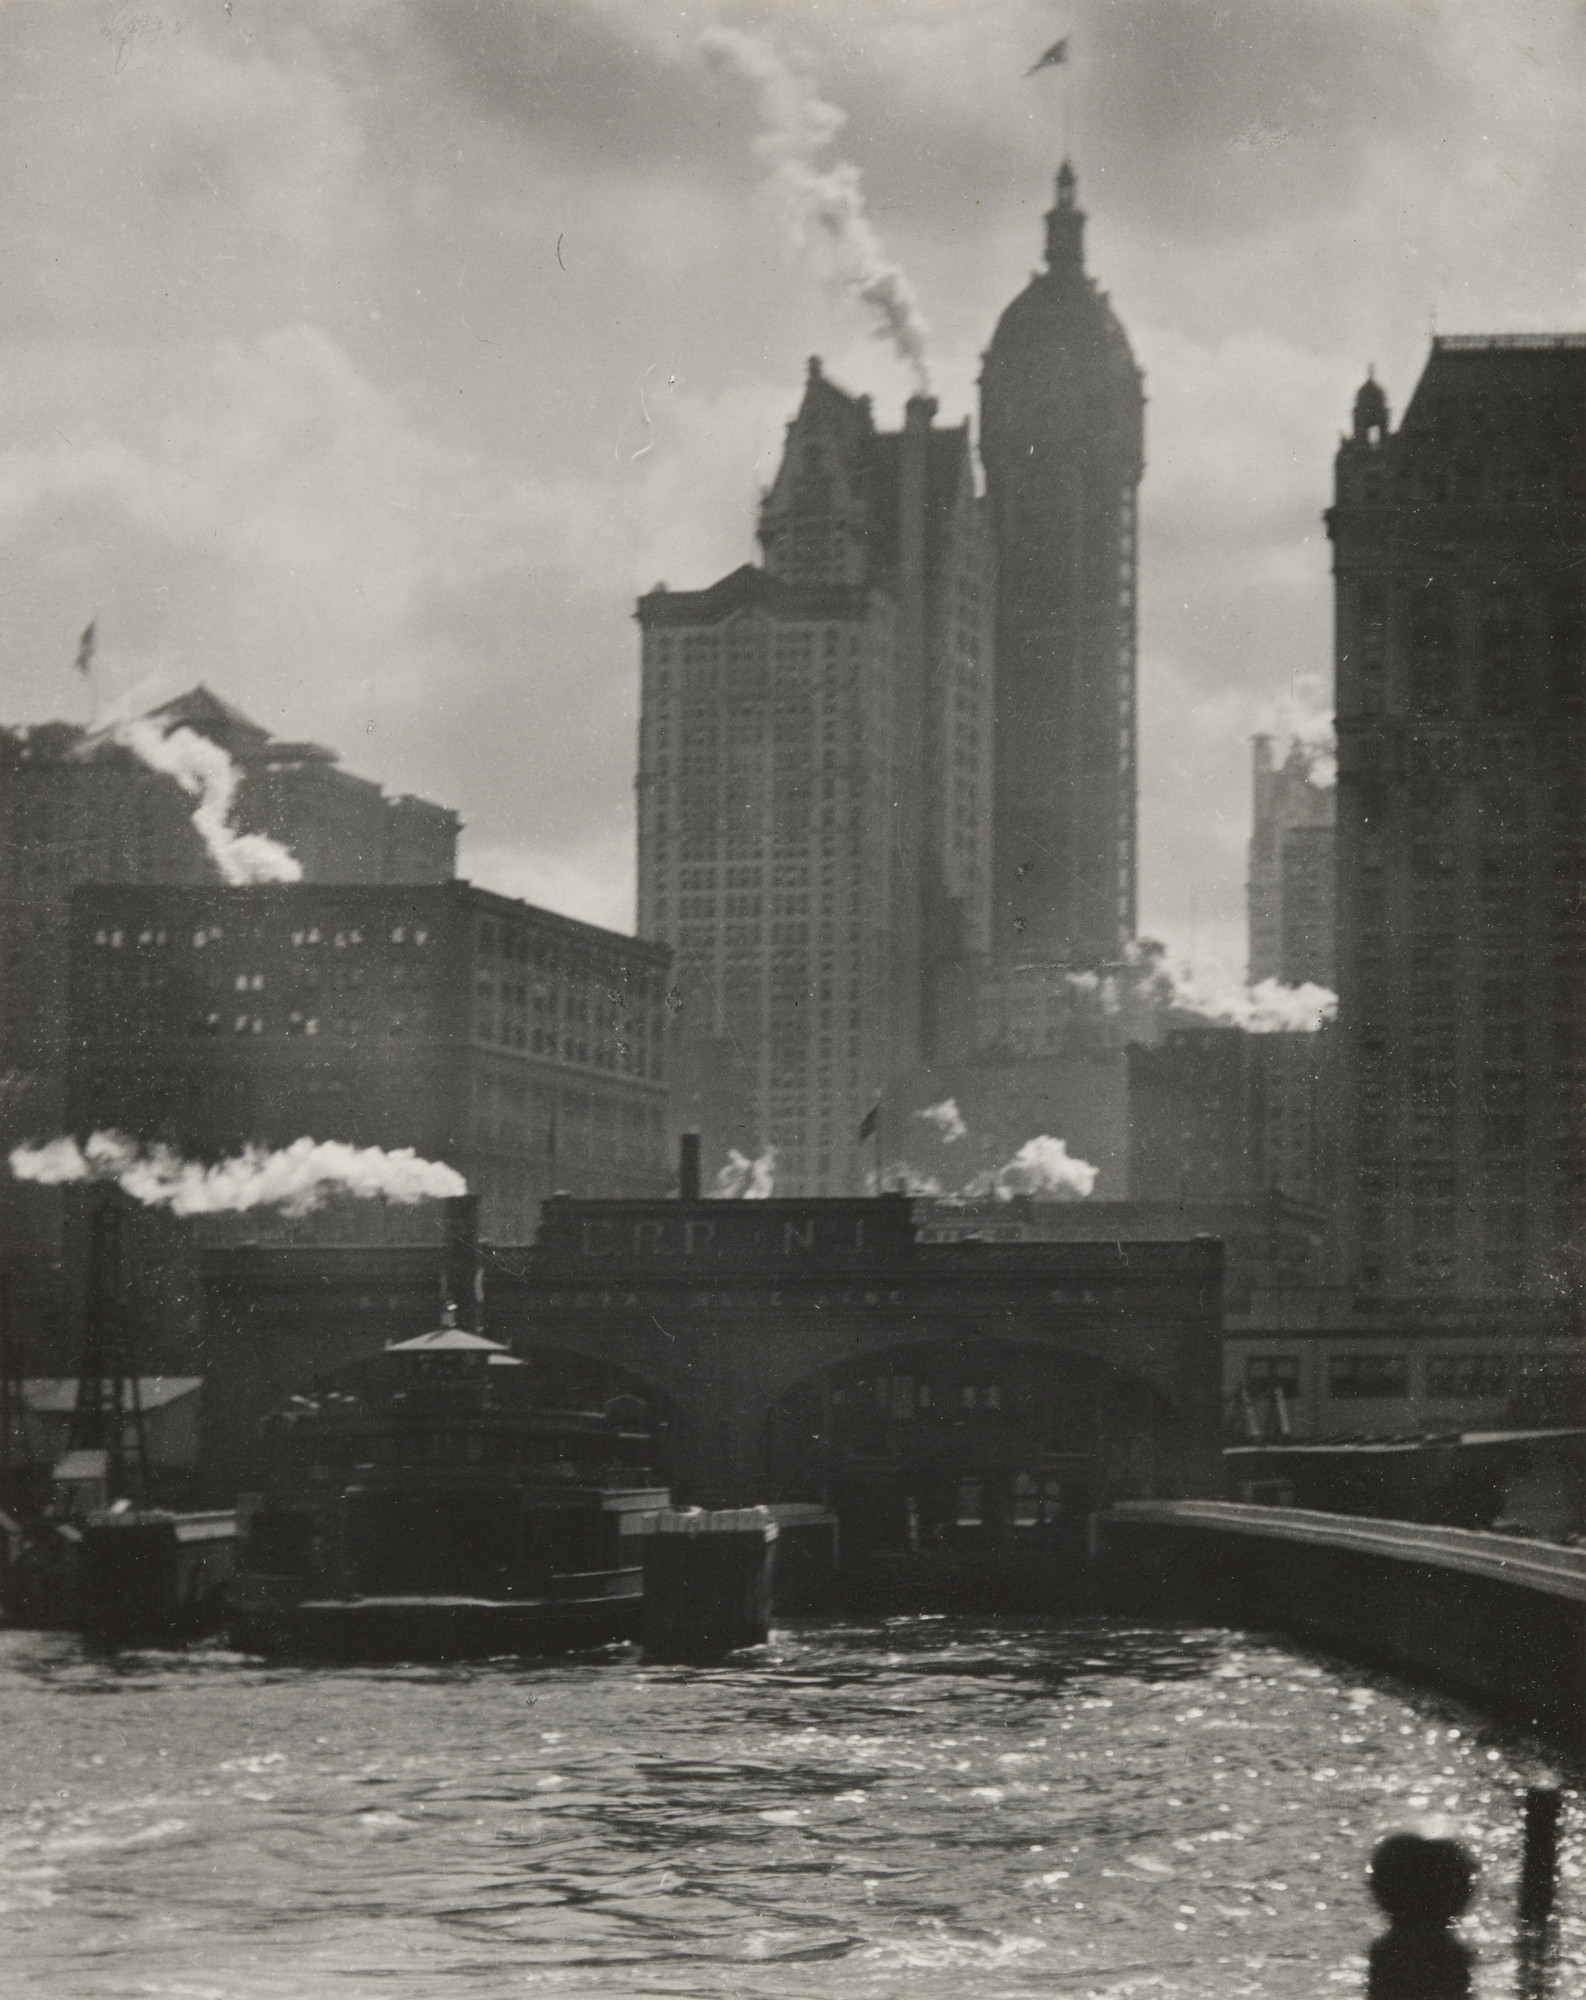 Alfred Stieglitz. The City of Ambition. 1910